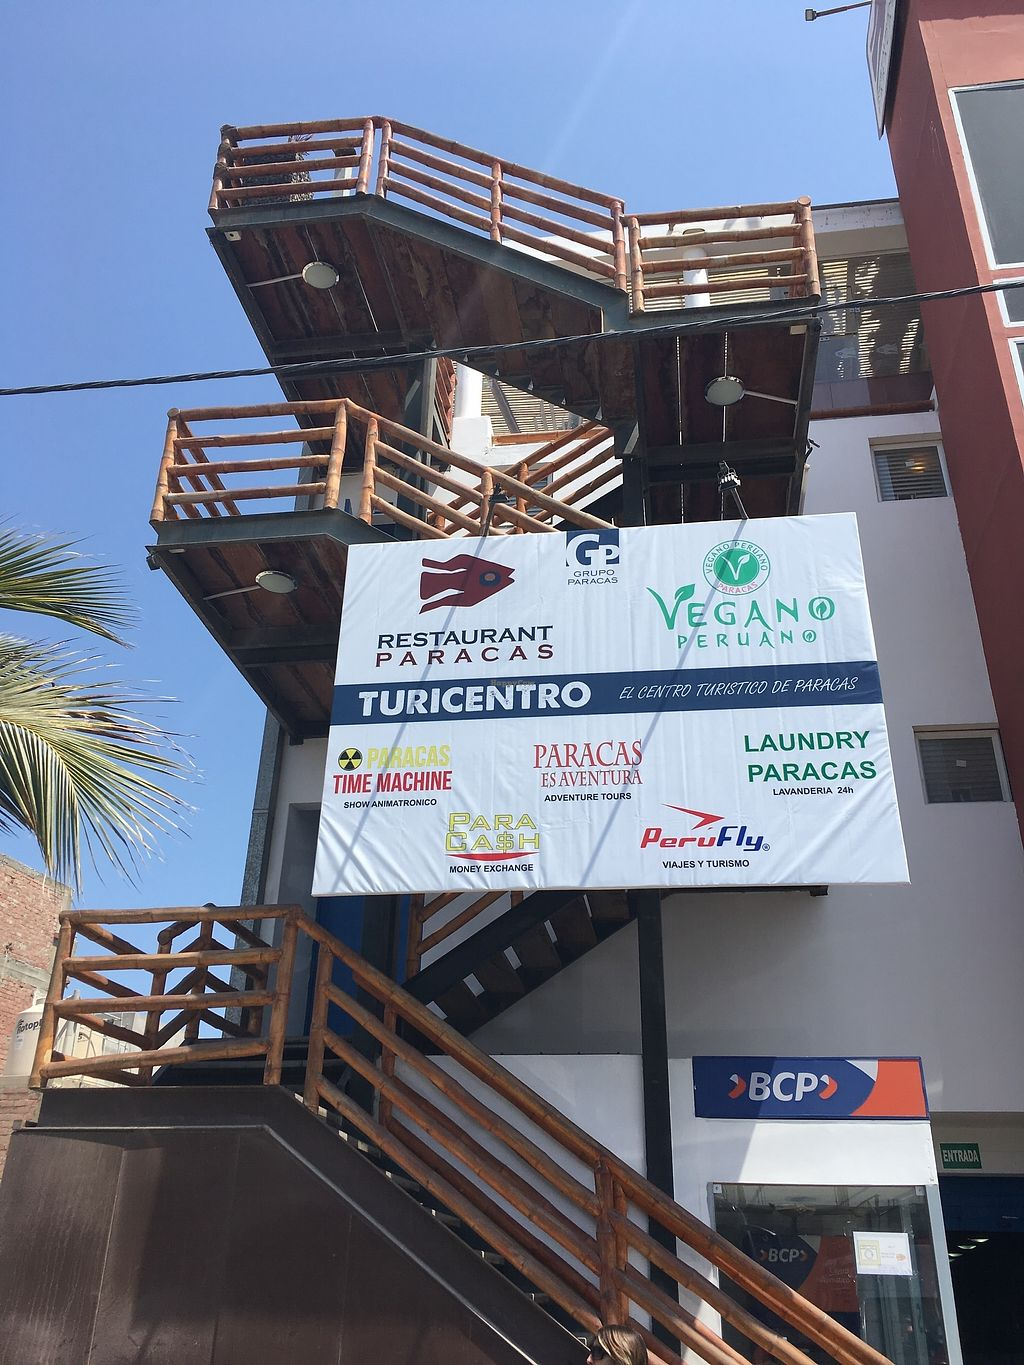 "Photo of Restaurant Paracas  by <a href=""/members/profile/peas-full"">peas-full</a> <br/>from outside  <br/> October 6, 2017  - <a href='/contact/abuse/image/100383/312461'>Report</a>"